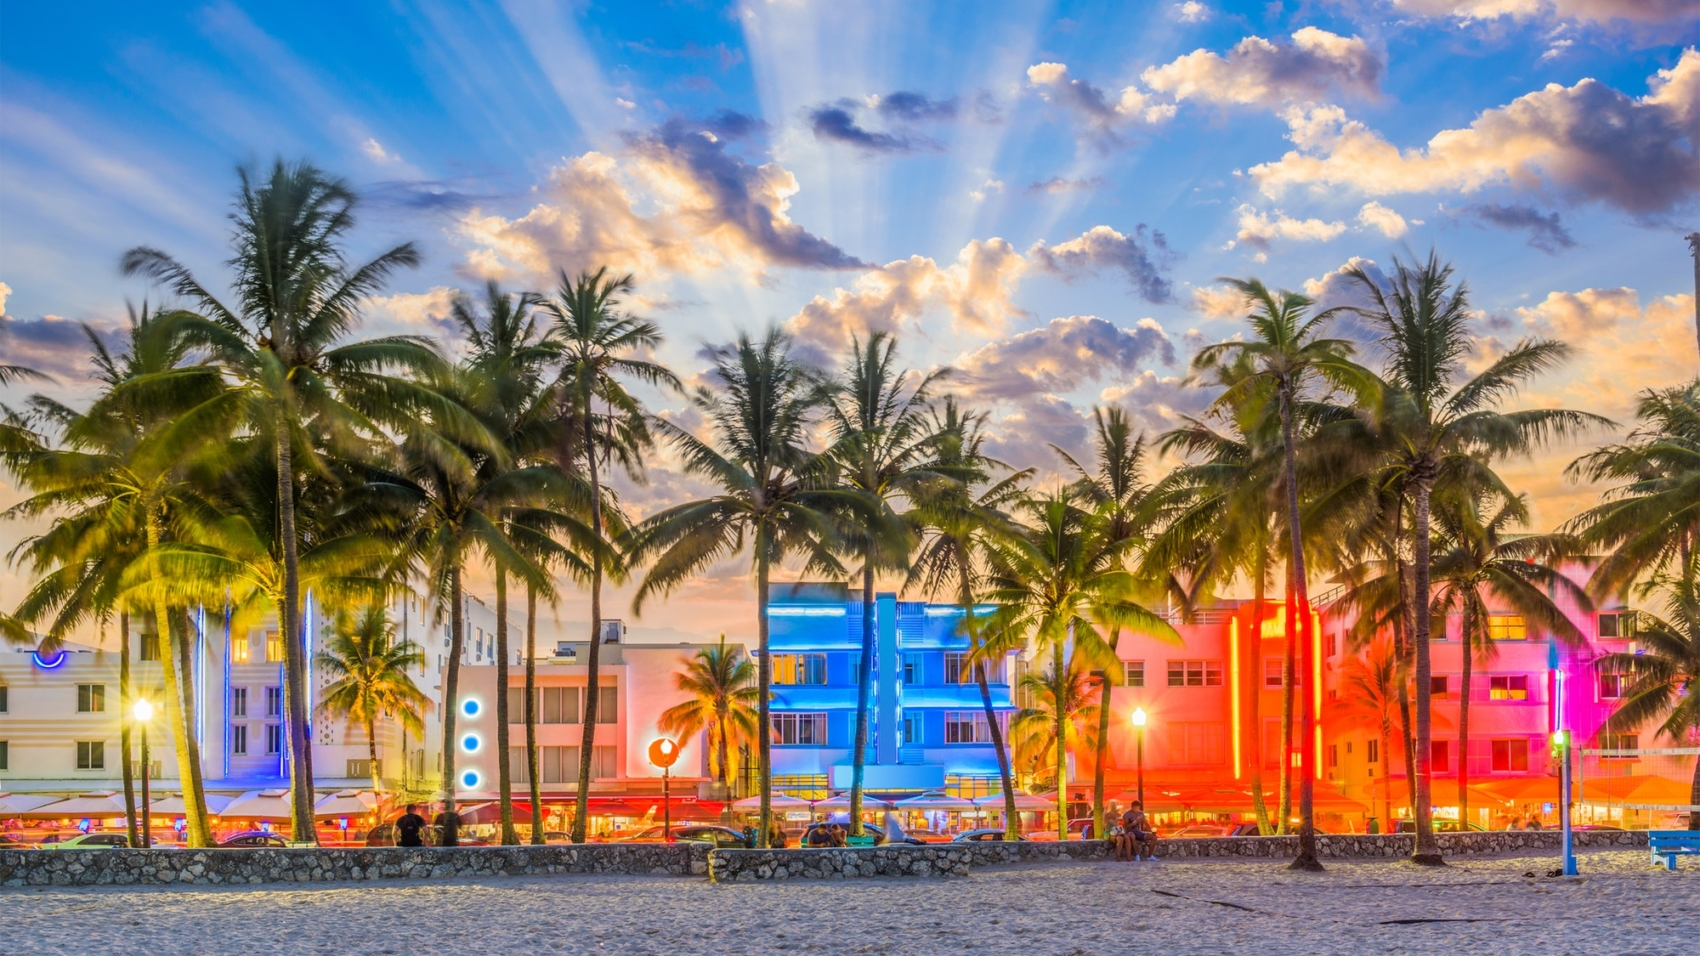 Miami Florida USA by SeanPavonePhoto